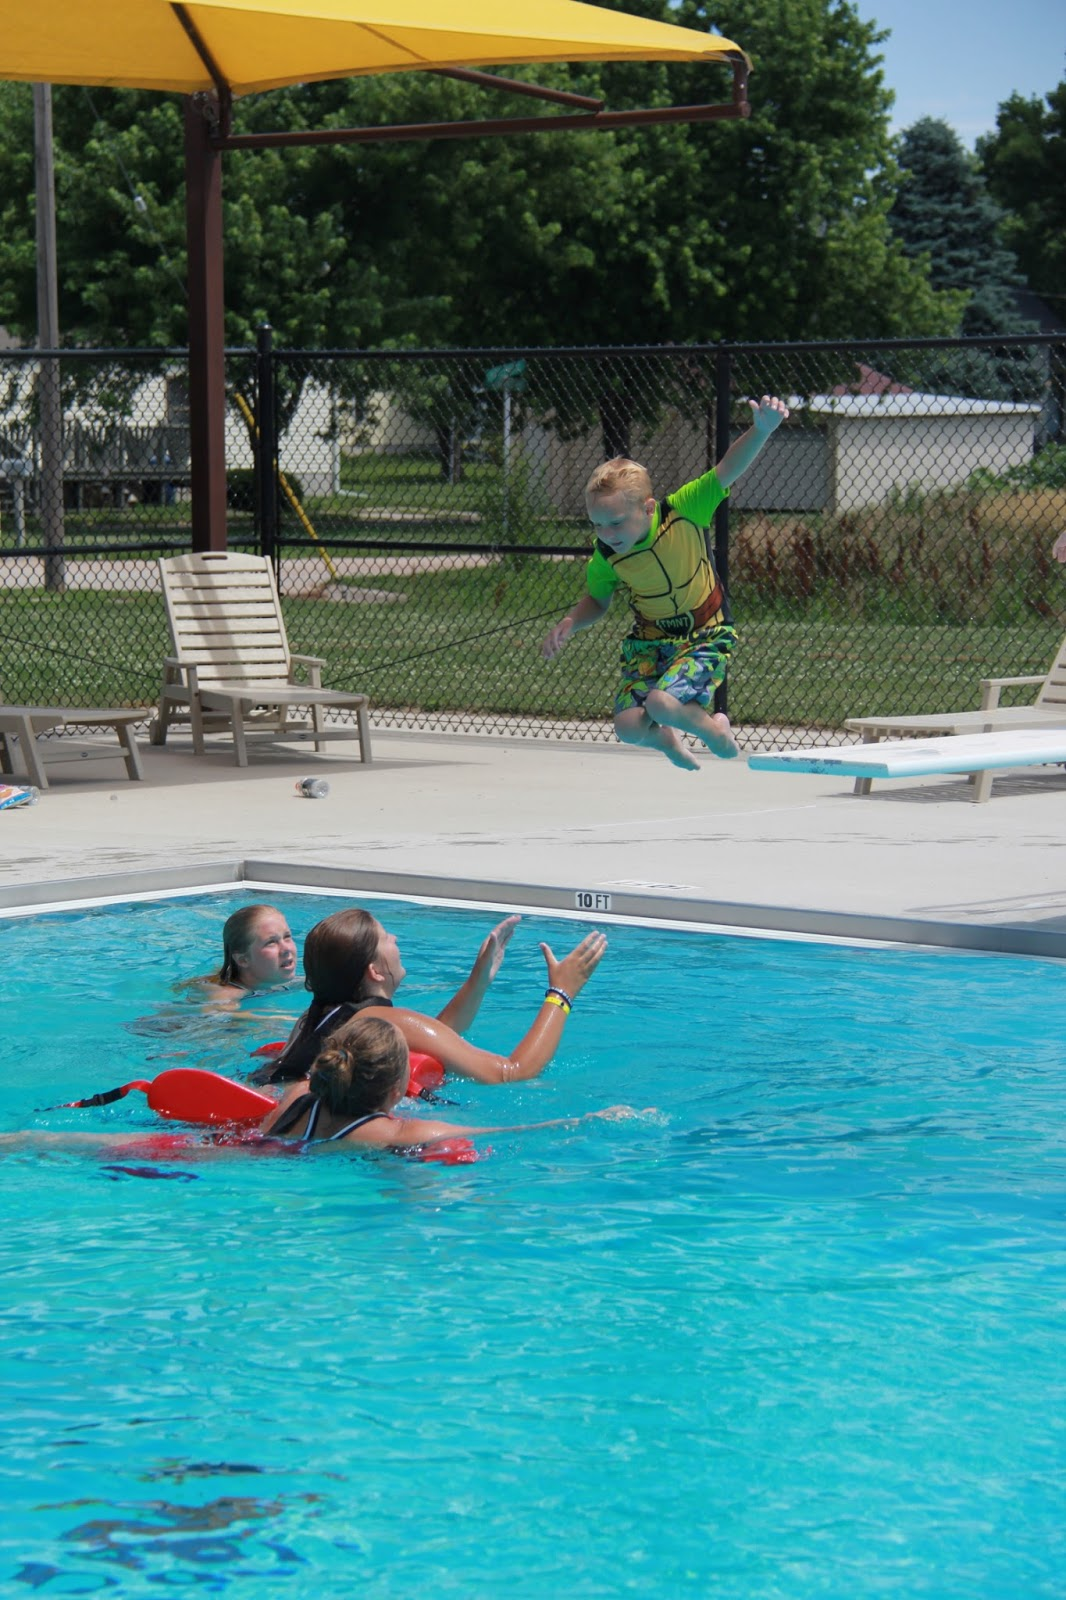 Village Of Exeter Exeter Aquatic Center Rules And Information